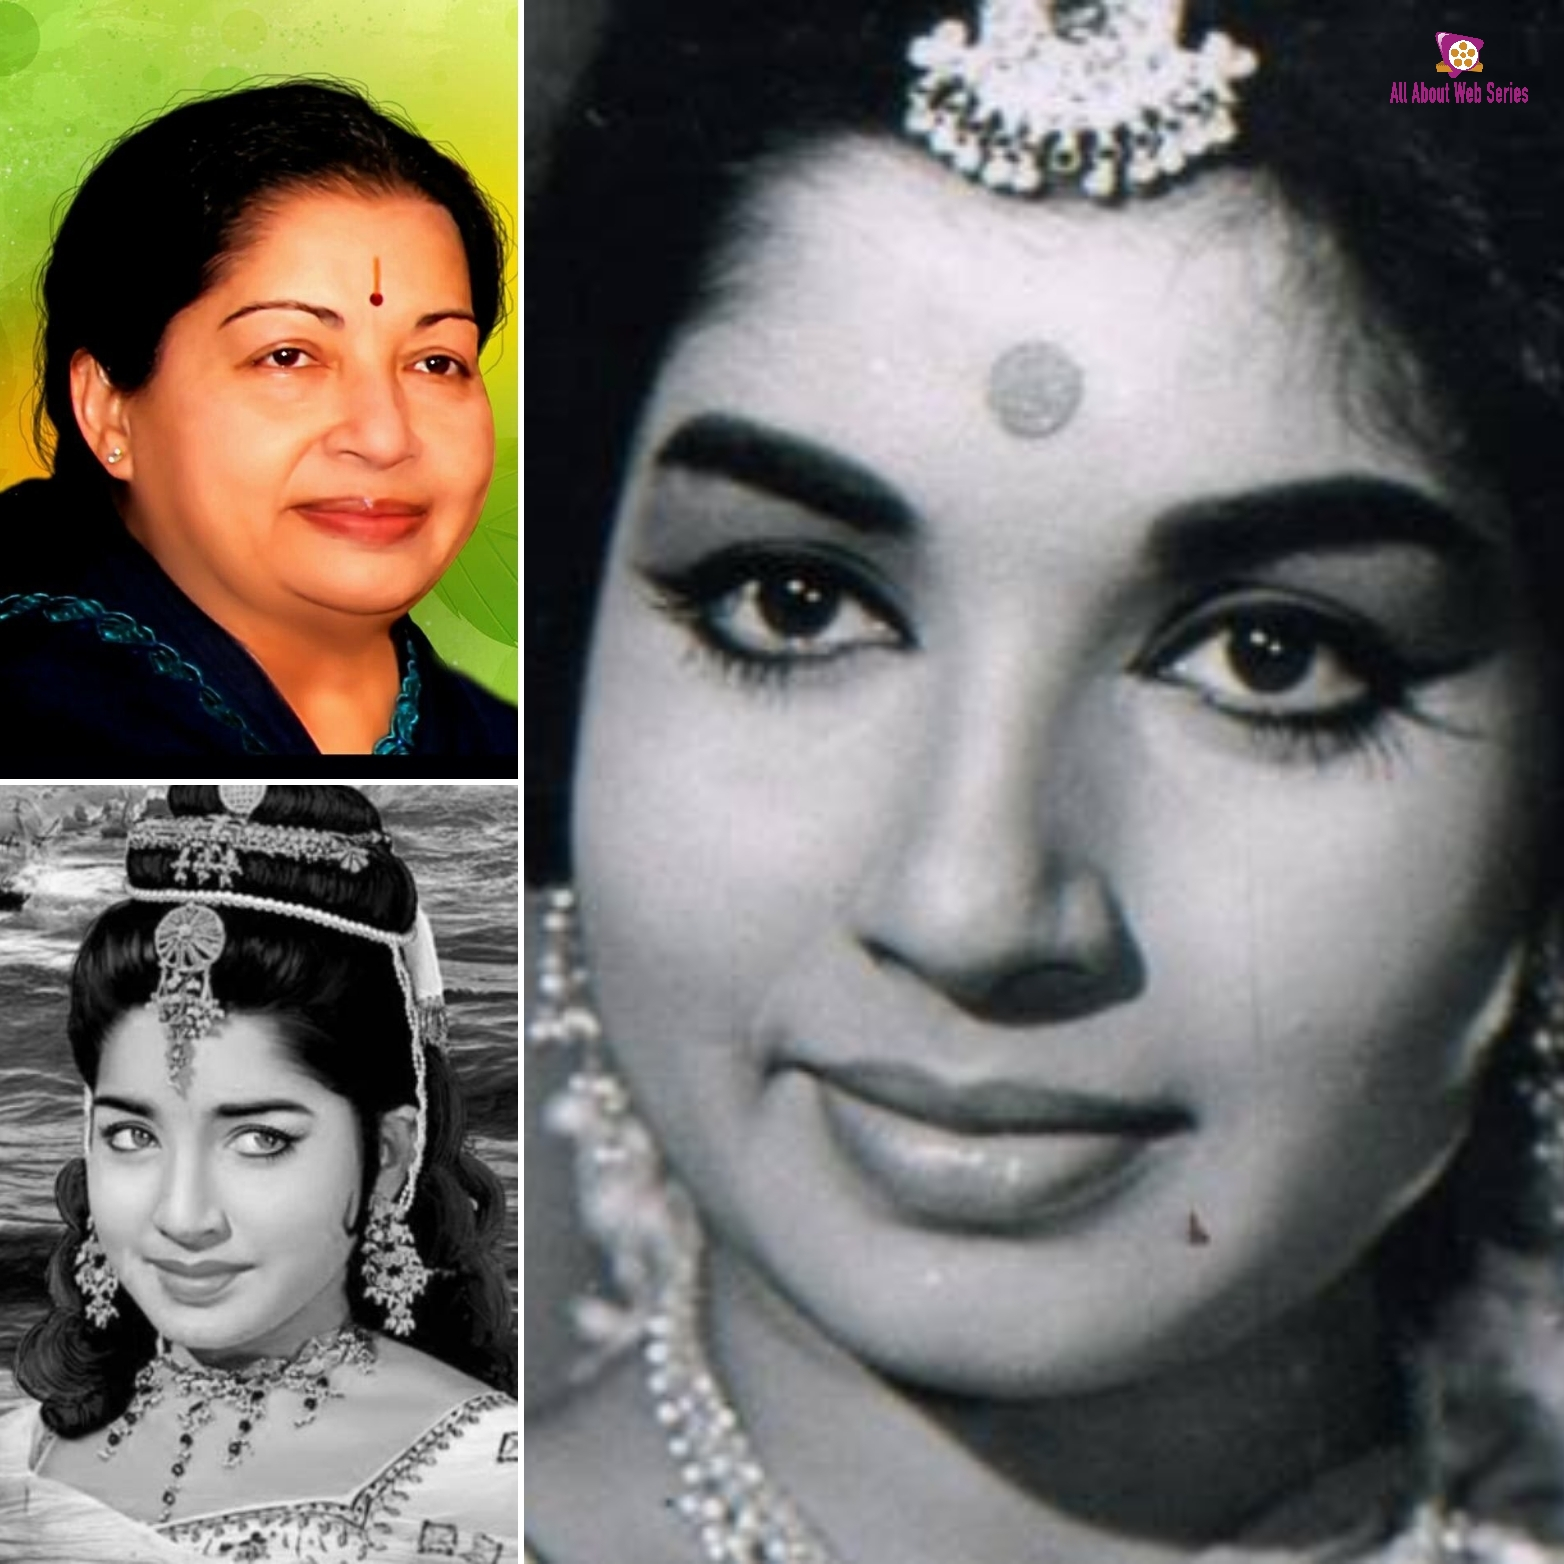 QUEEN - Biopic based on the life of greatest politicians of all time, J. Jayalalithaa